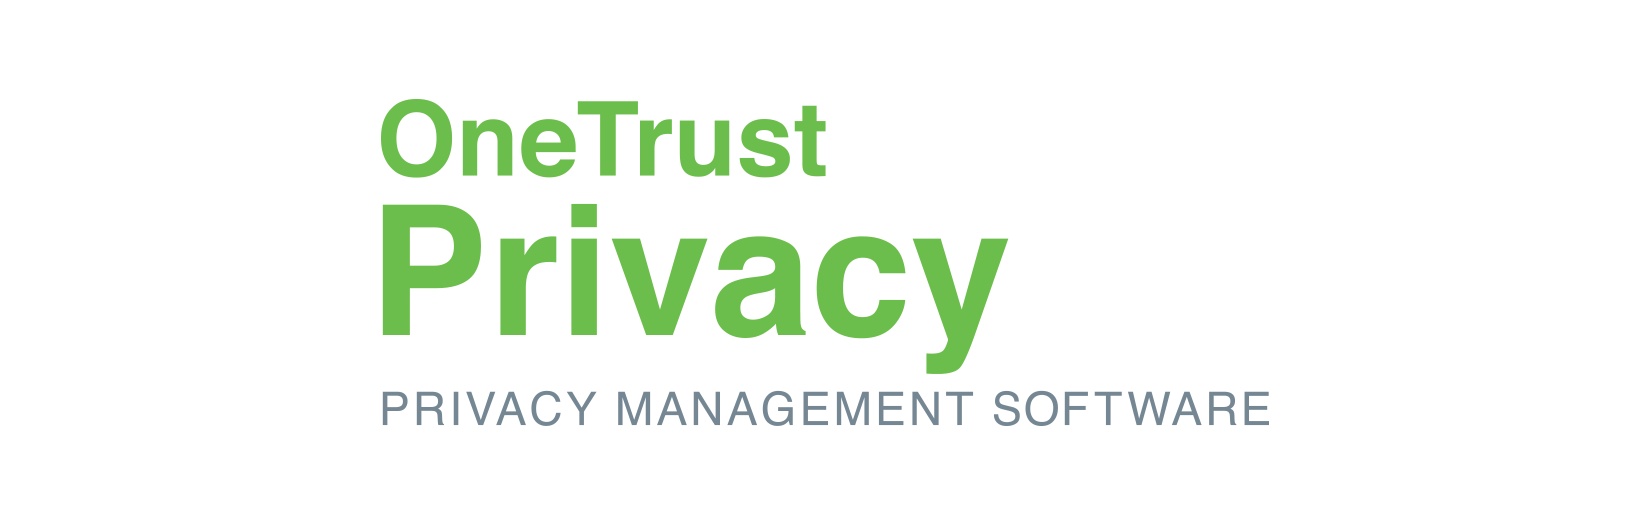 OneTrust Privacy Management Platform logo